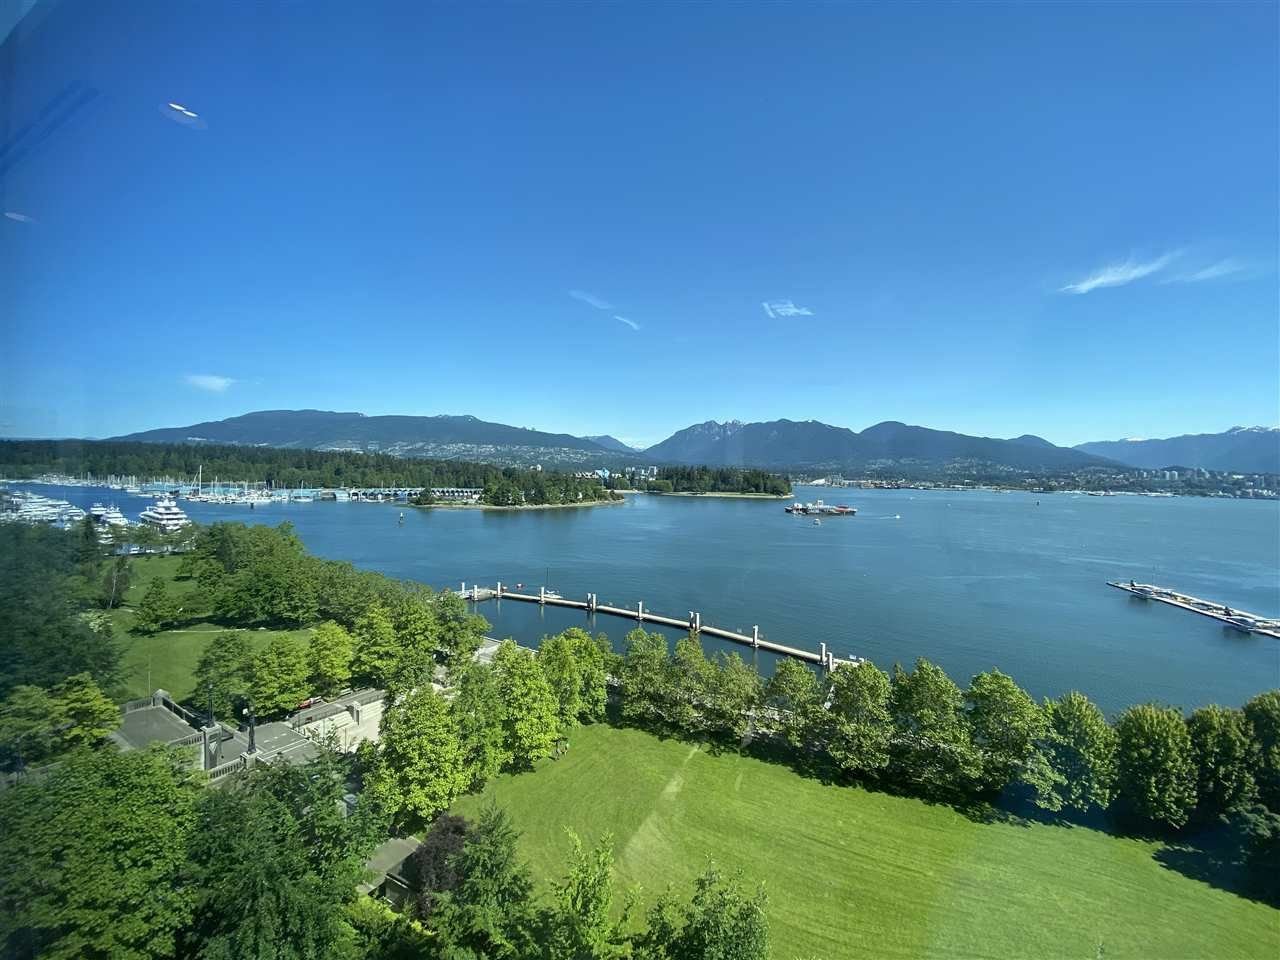 """Main Photo: 1002 1169 W CORDOVA Street in Vancouver: Coal Harbour Condo for sale in """"HARBOUR GREEN 1"""" (Vancouver West)  : MLS®# R2459614"""